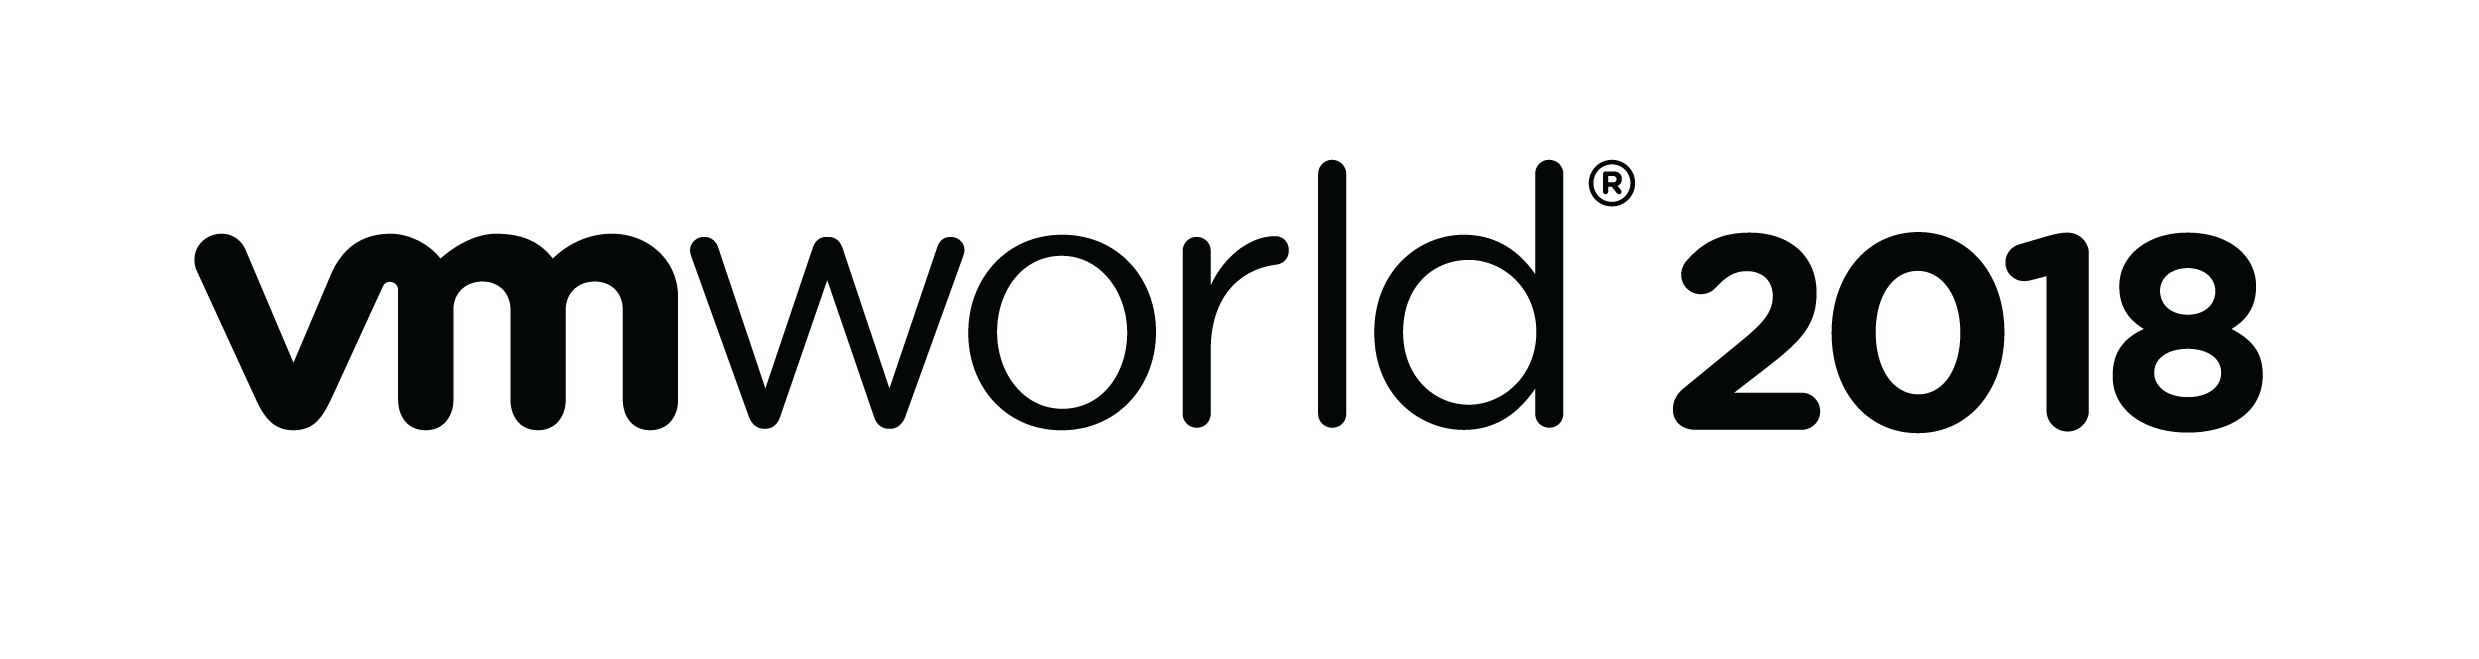 VMworld 2018: What's new in vRealize Automation 7.5?